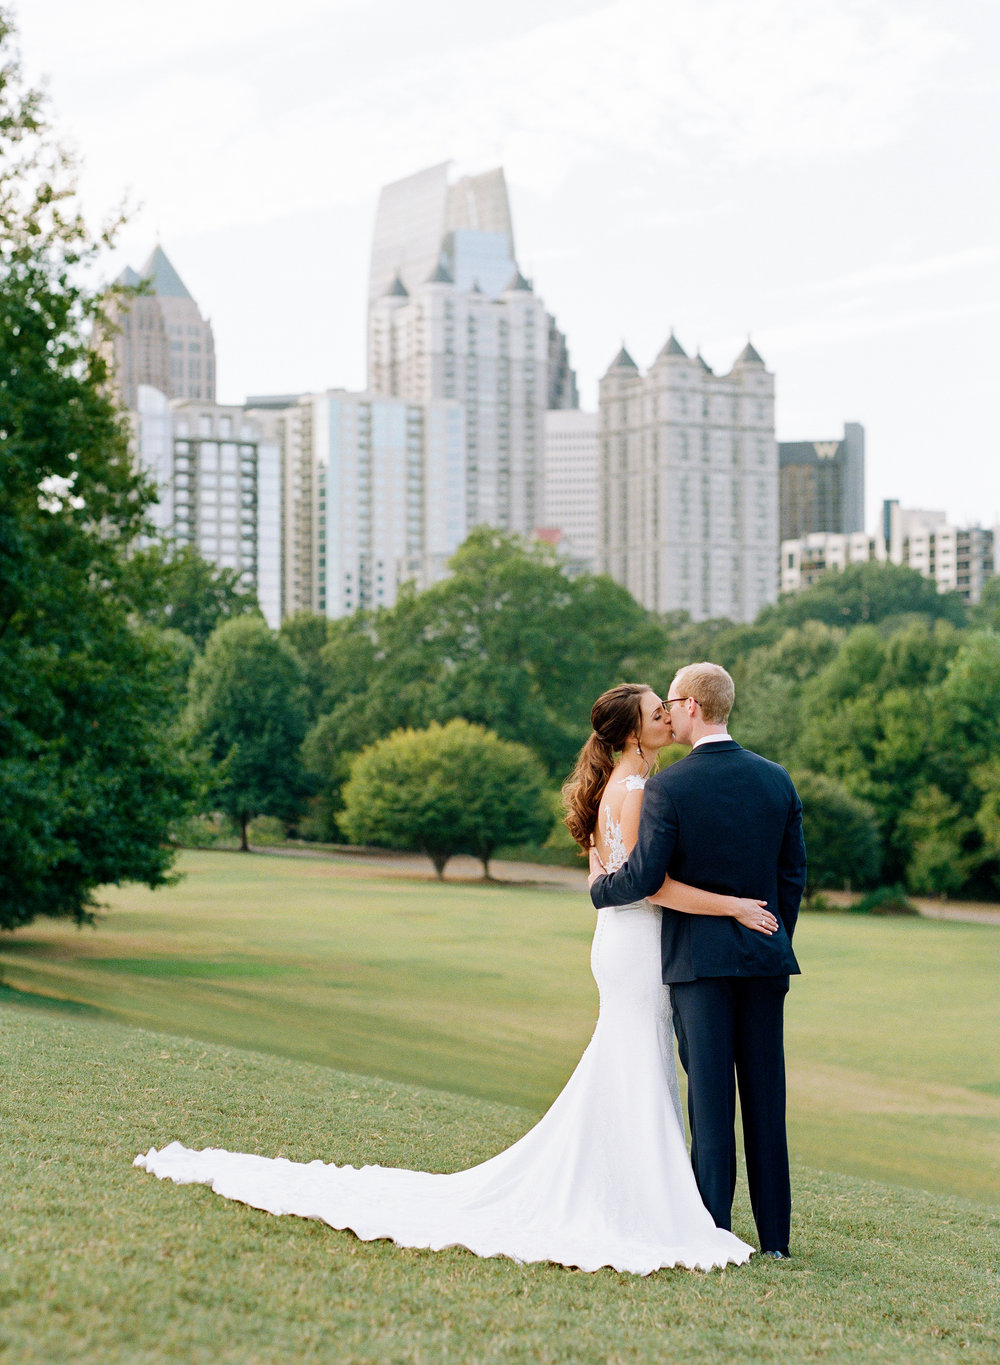 The Greystone at Piedmont Park Wedding - Carrie Joy Photography-1059.jpg